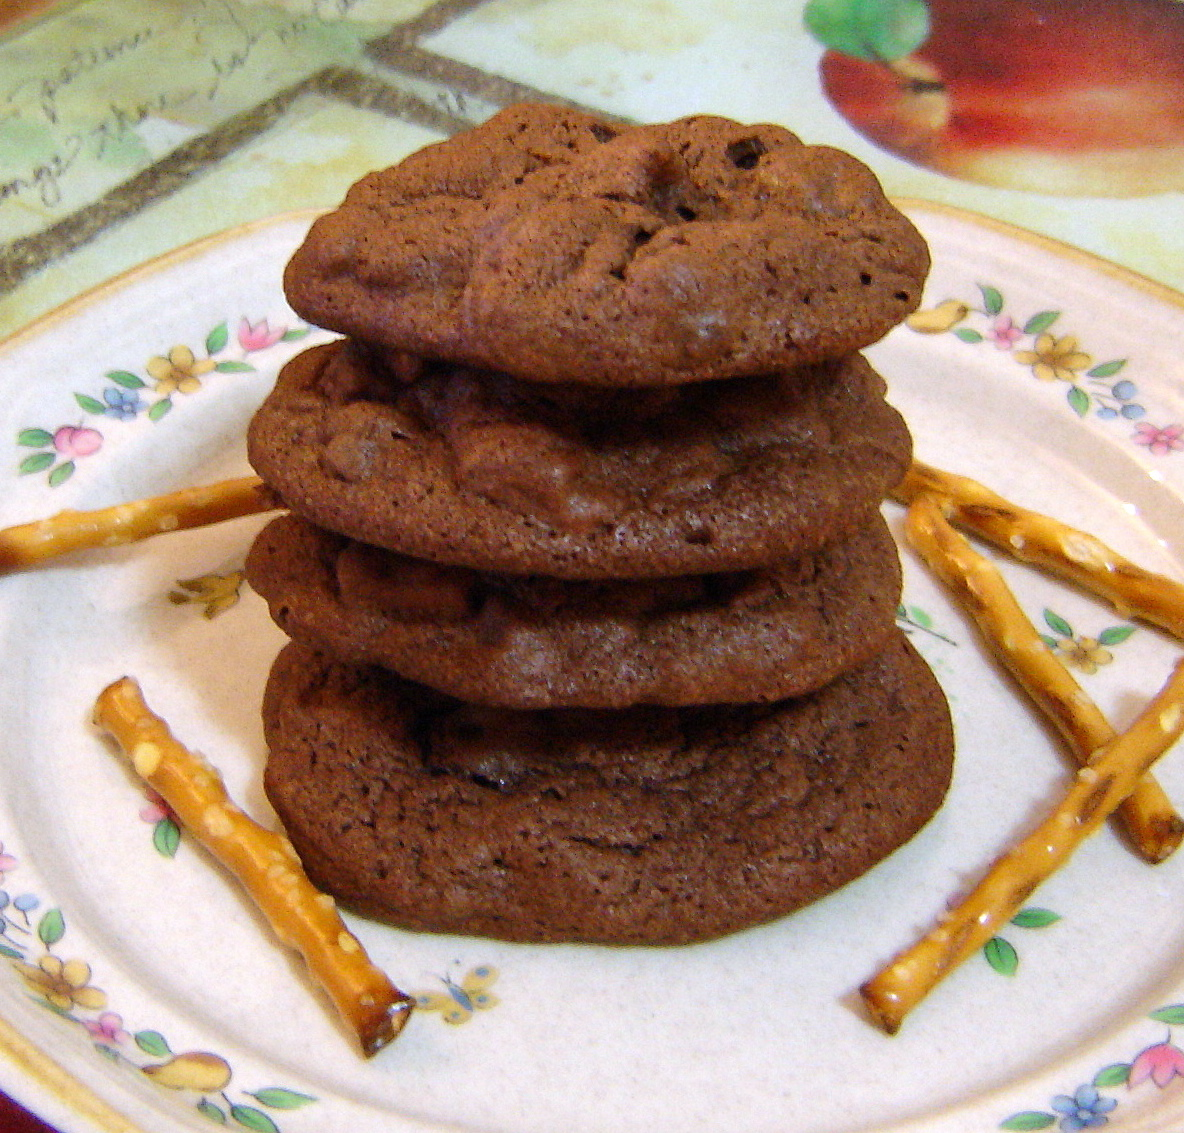 Chocolate Covered Pretzel Cookies